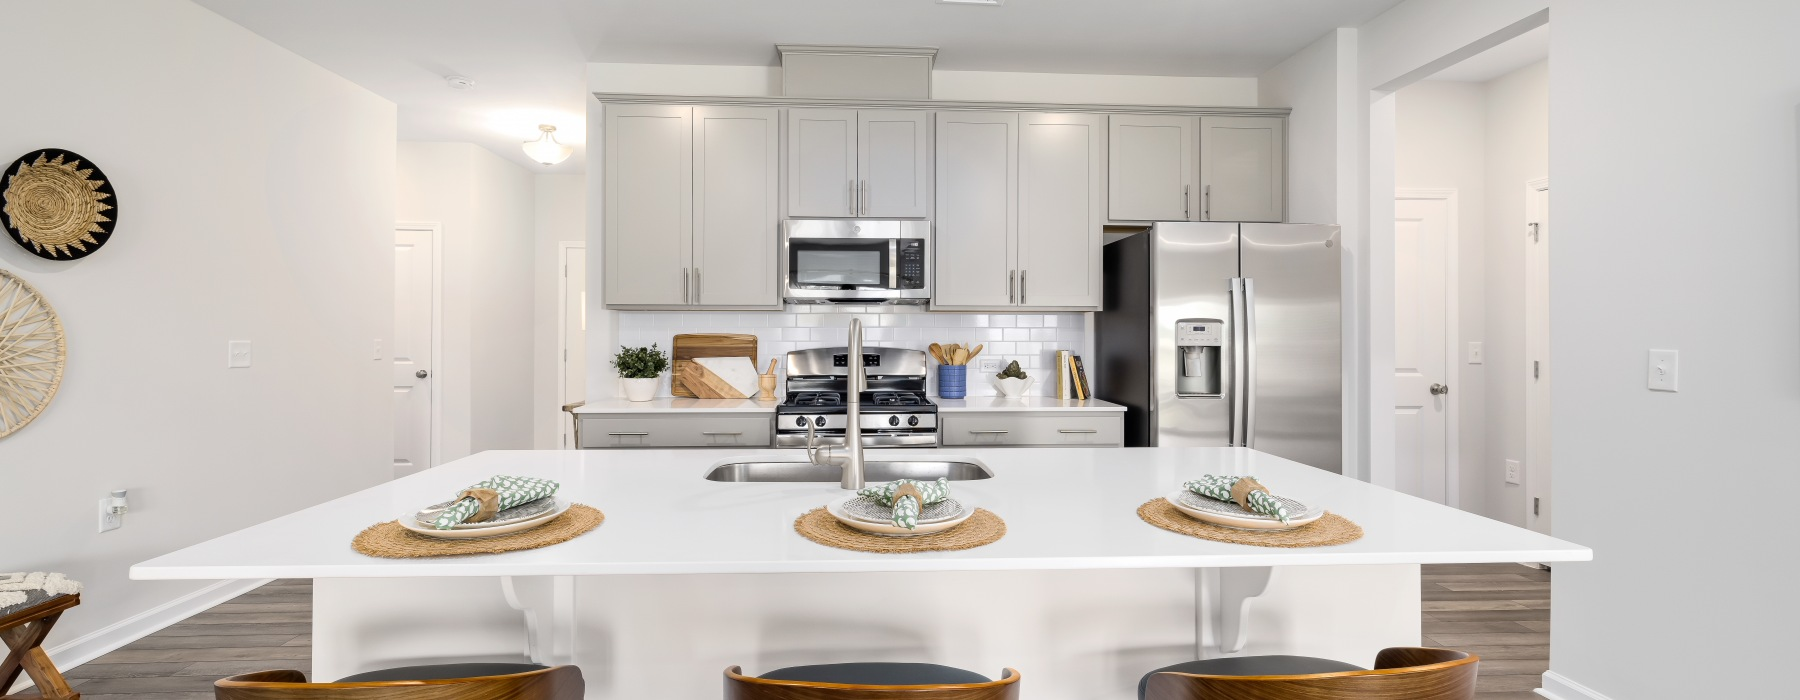 Kitchen with quartz countertops, gray cabinets and stainless steel appliances